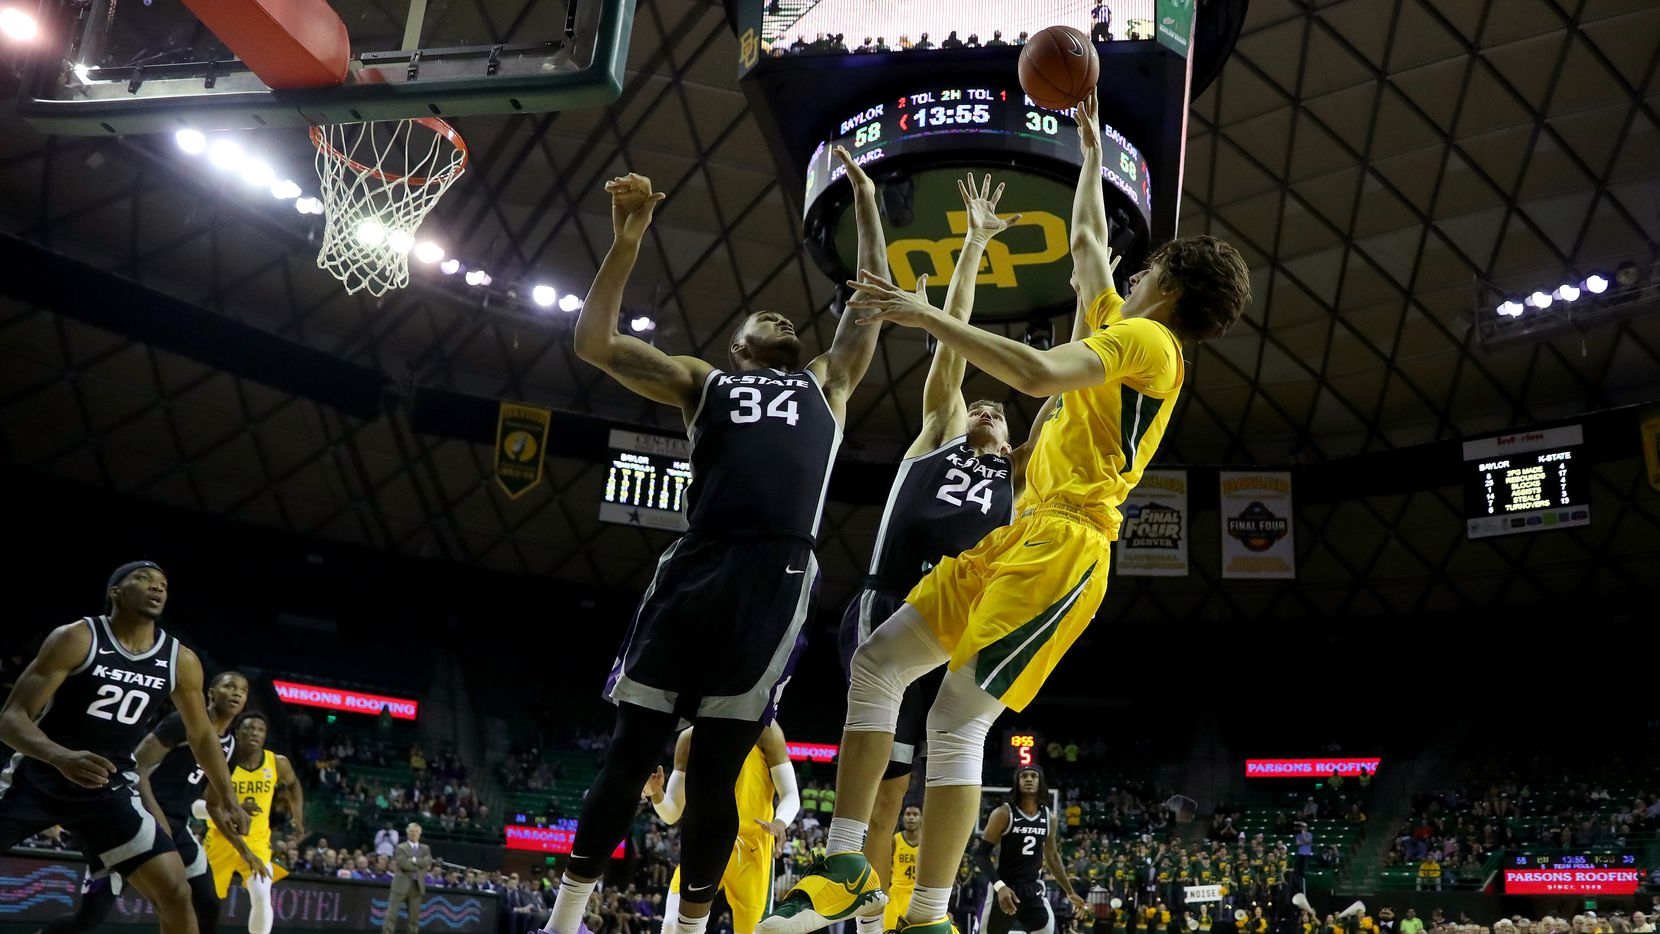 WACO, TEXAS - FEBRUARY 25: Matthew Mayer #24 of the Baylor Bears shoots the ball against Levi Stockard III #34 of the Kansas State Wildcats and Pierson McAtee #24 of the Kansas State Wildcats in the second half of a NCAA basketball game at Ferrell Center on February 25, 2020 in Waco, Texas.